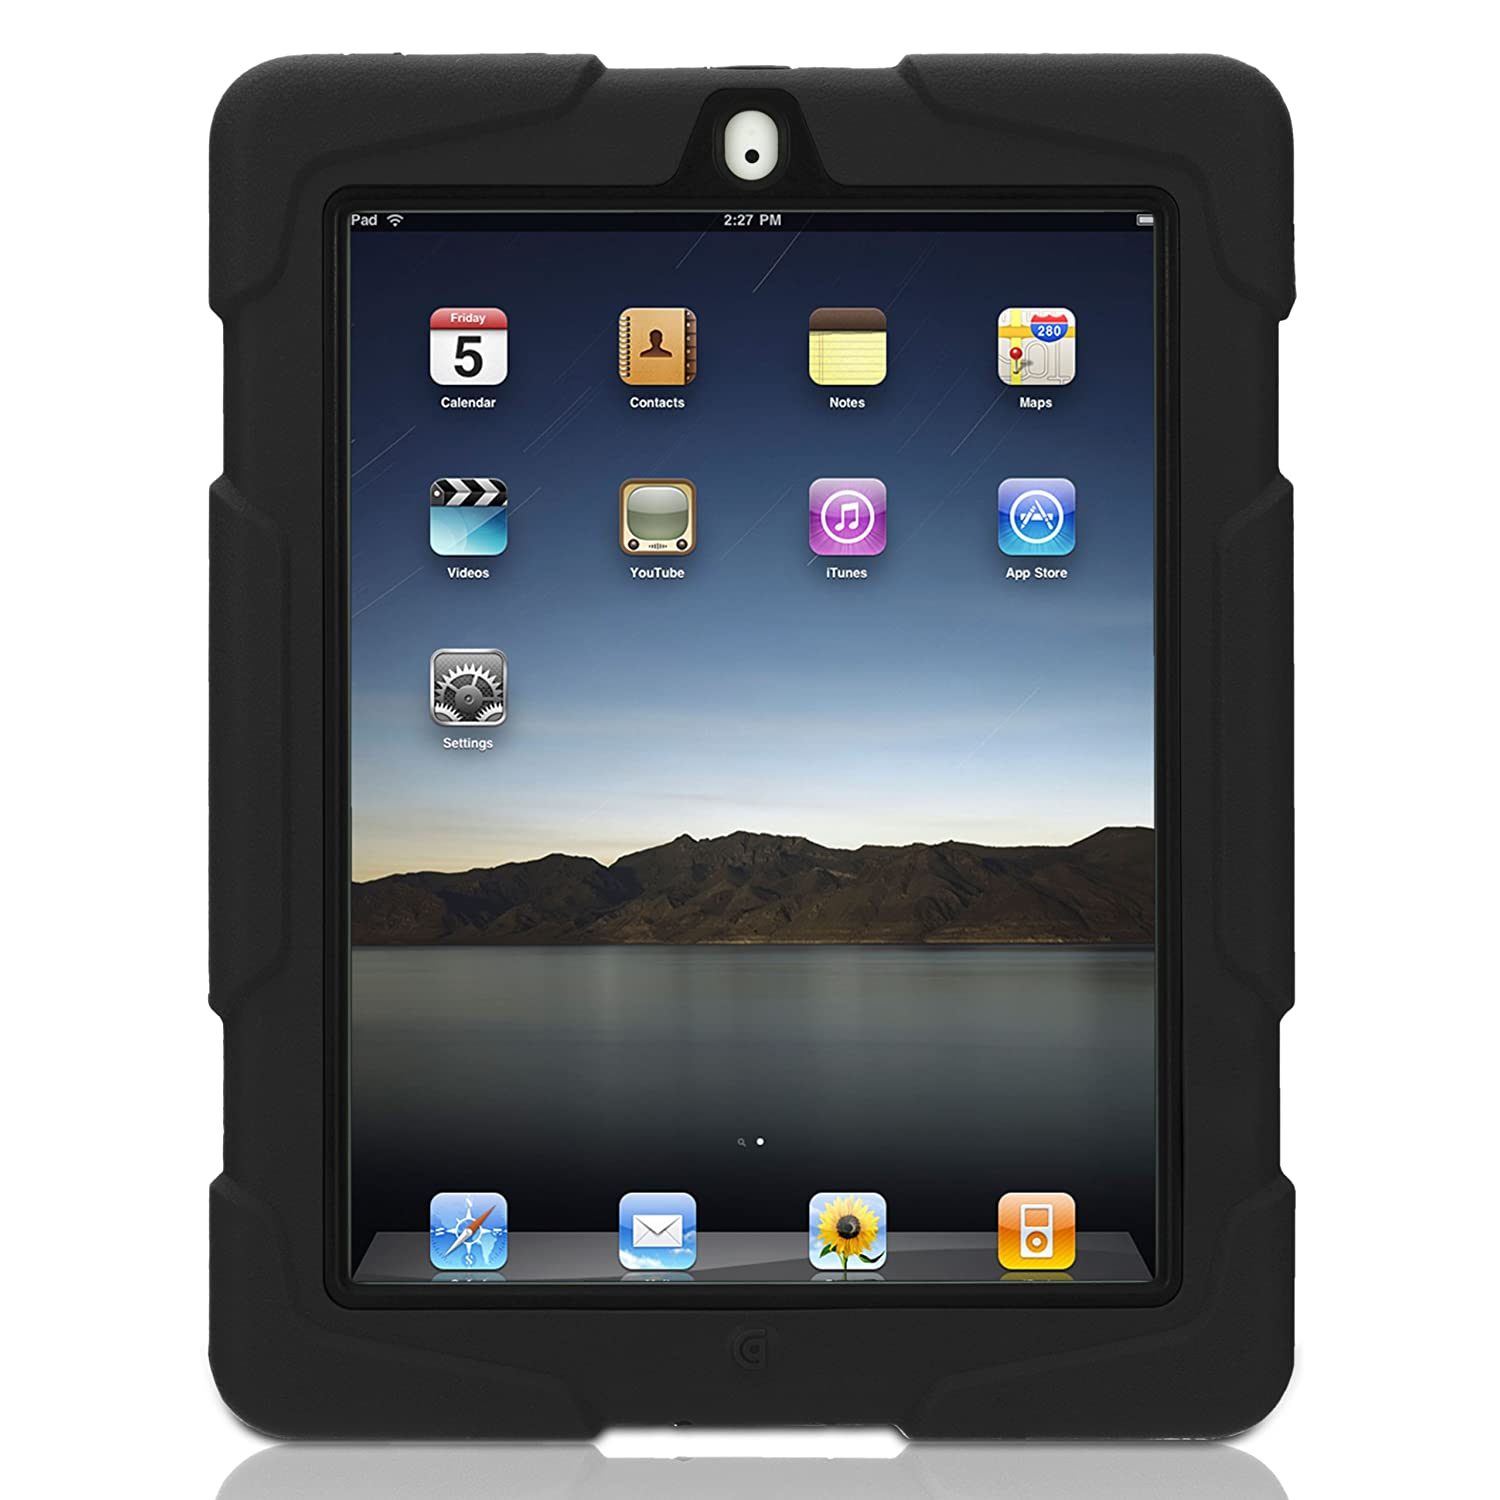 Griffin GB02480 Survivor Extreme-duty Military case for the new iPad (3rd Generation) and iPad 2, Black